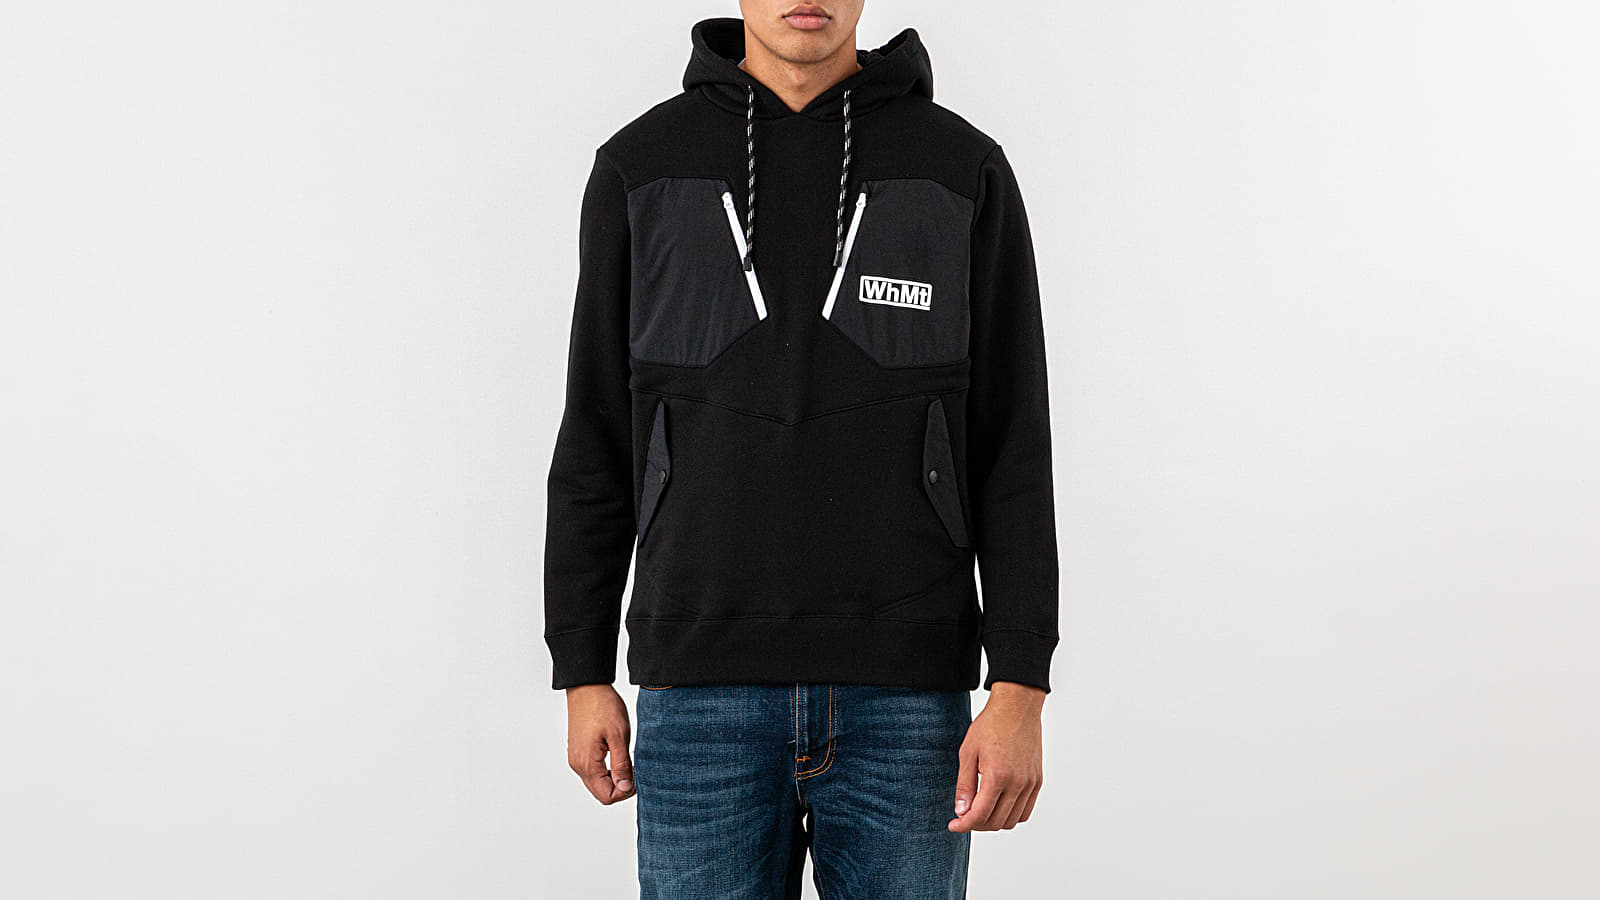 White Mountaineering Hooddie